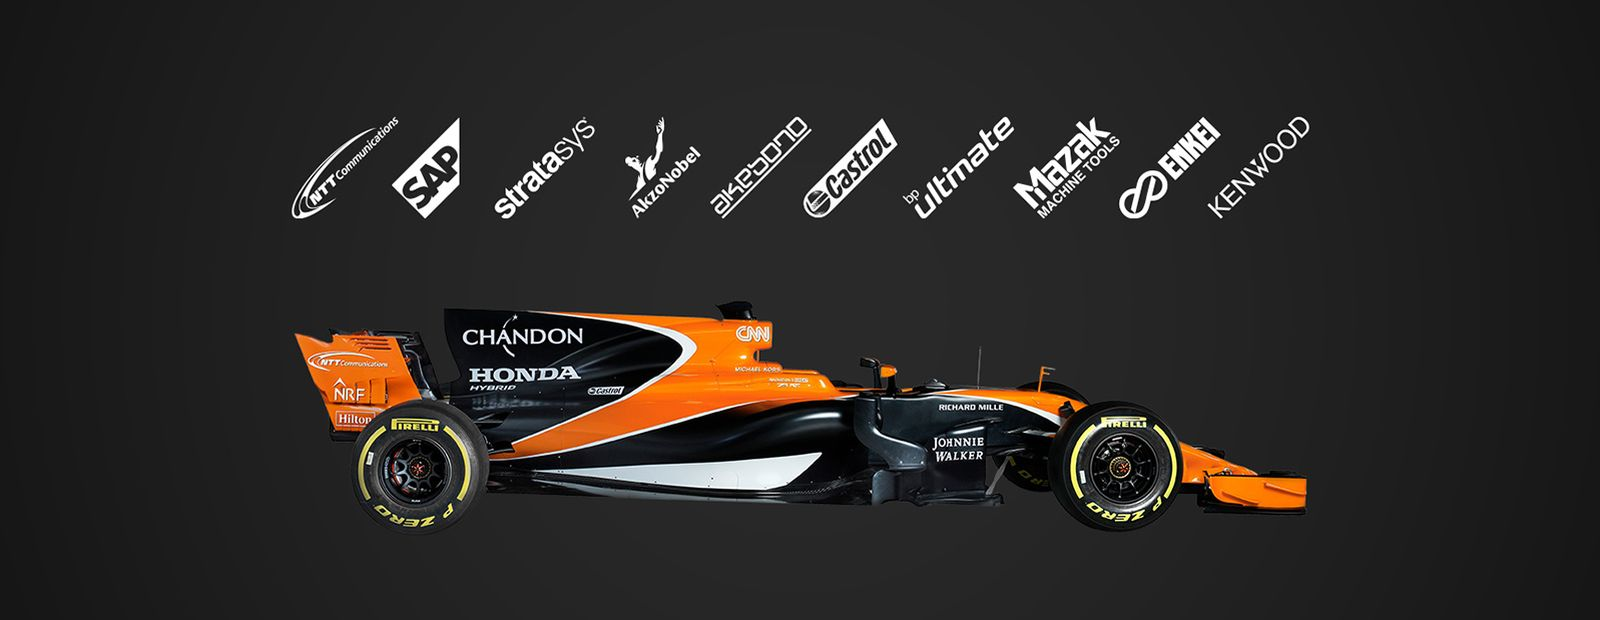 The tech innovators behind the MCL32